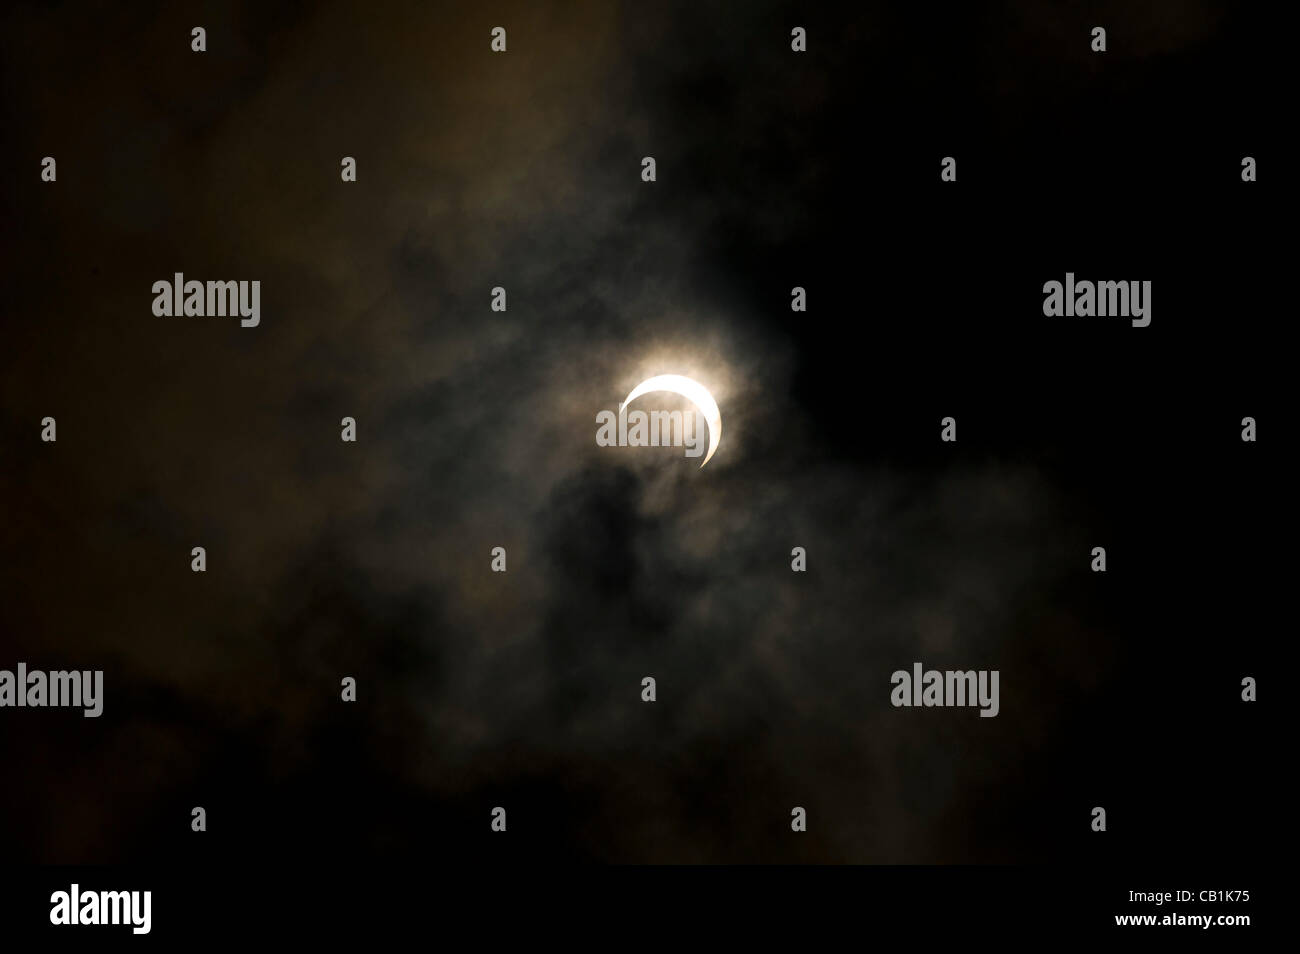 Photo shows the eclipse that crossed the skies of Tokyo and across Asia on Monday 25 May 2012. The annular solar - Stock Image